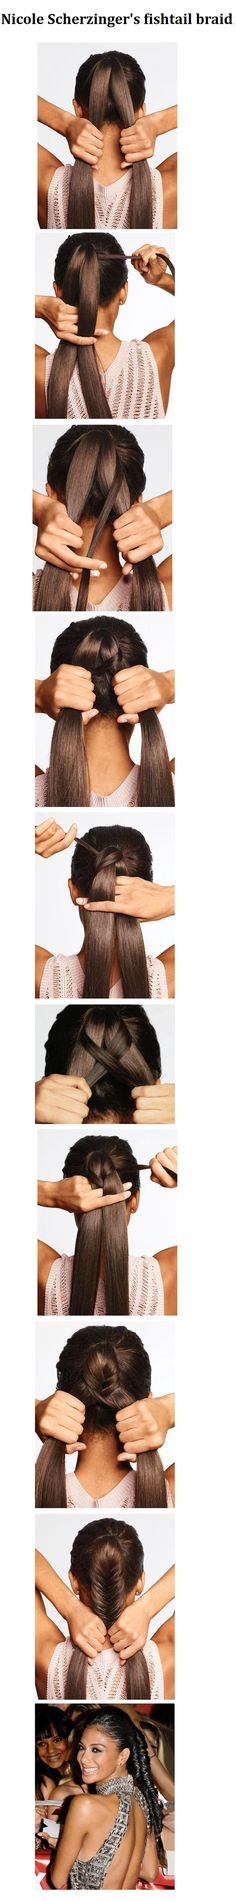 Nicole Scherzinger's fishtail braid - this breaks it down perfectly.